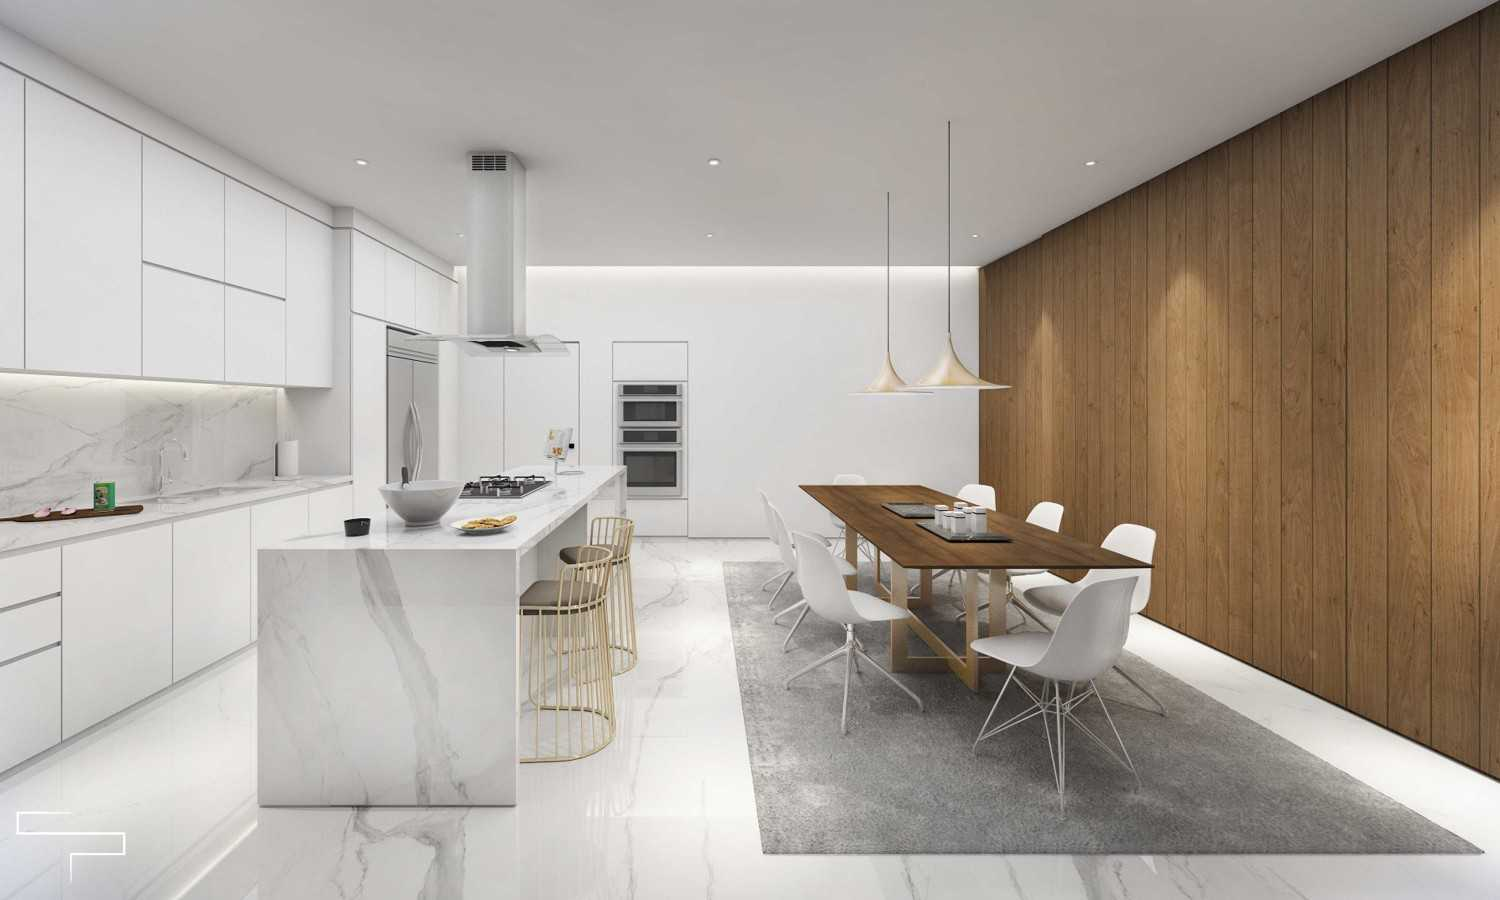 Foto inspirasi ide desain dapur kontemporer Kitchen and dining oleh Sontani Partners di Arsitag